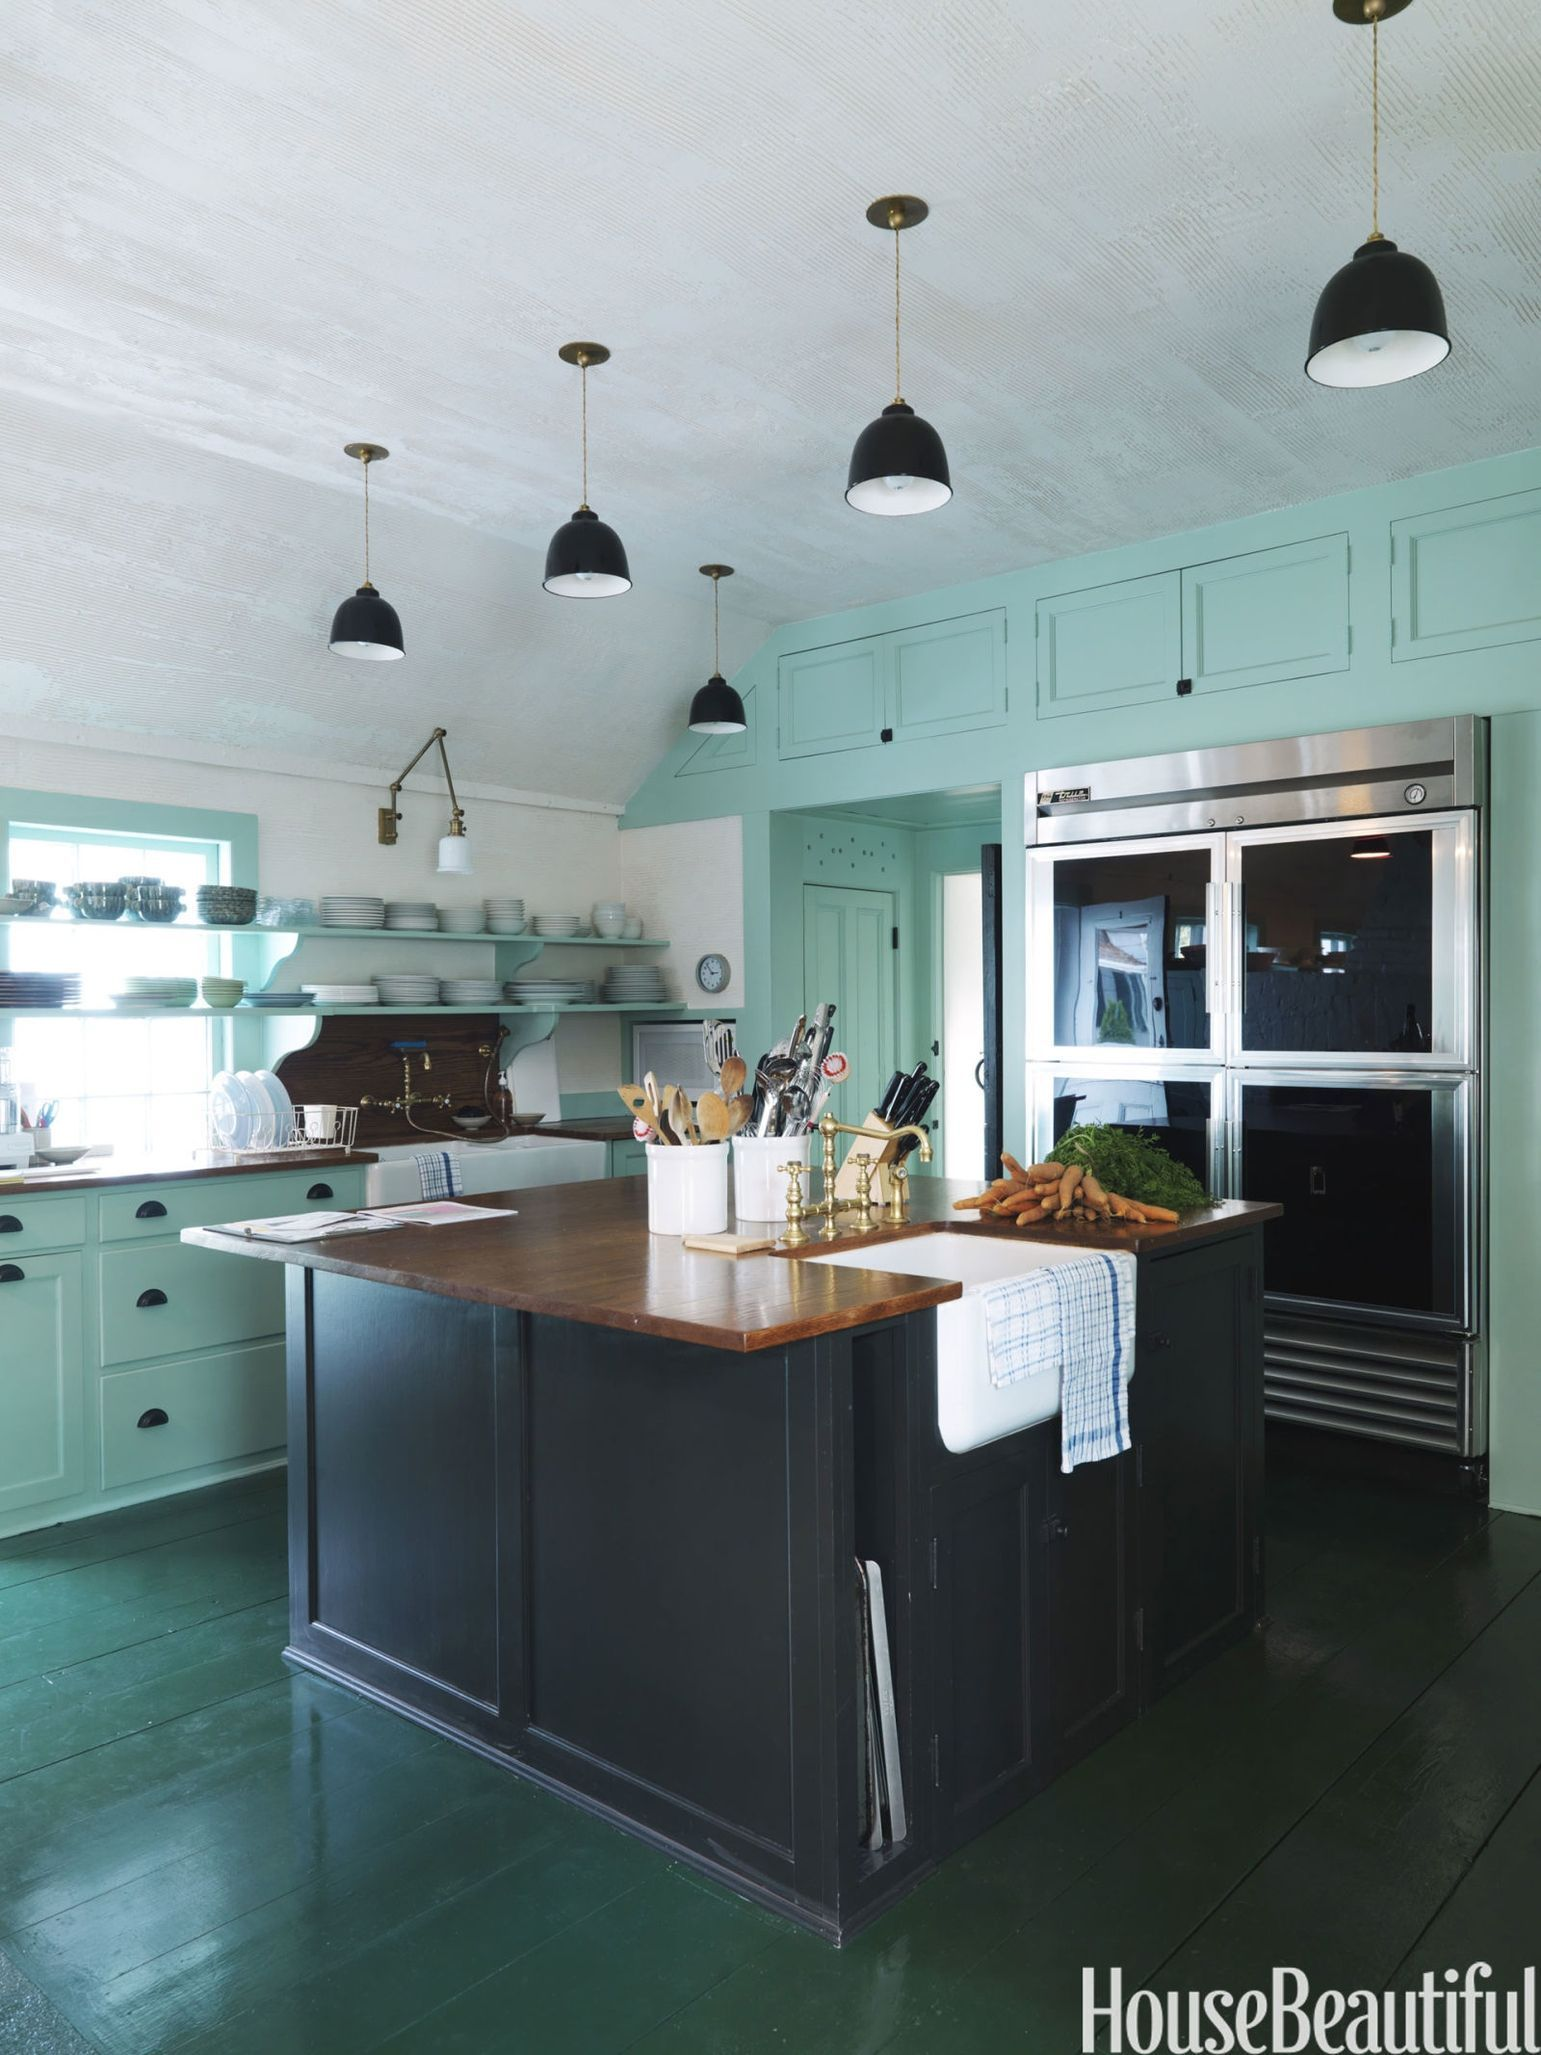 12 Mint Rooms That Feel So Fresh | Mint rooms, Kitchen installation ...